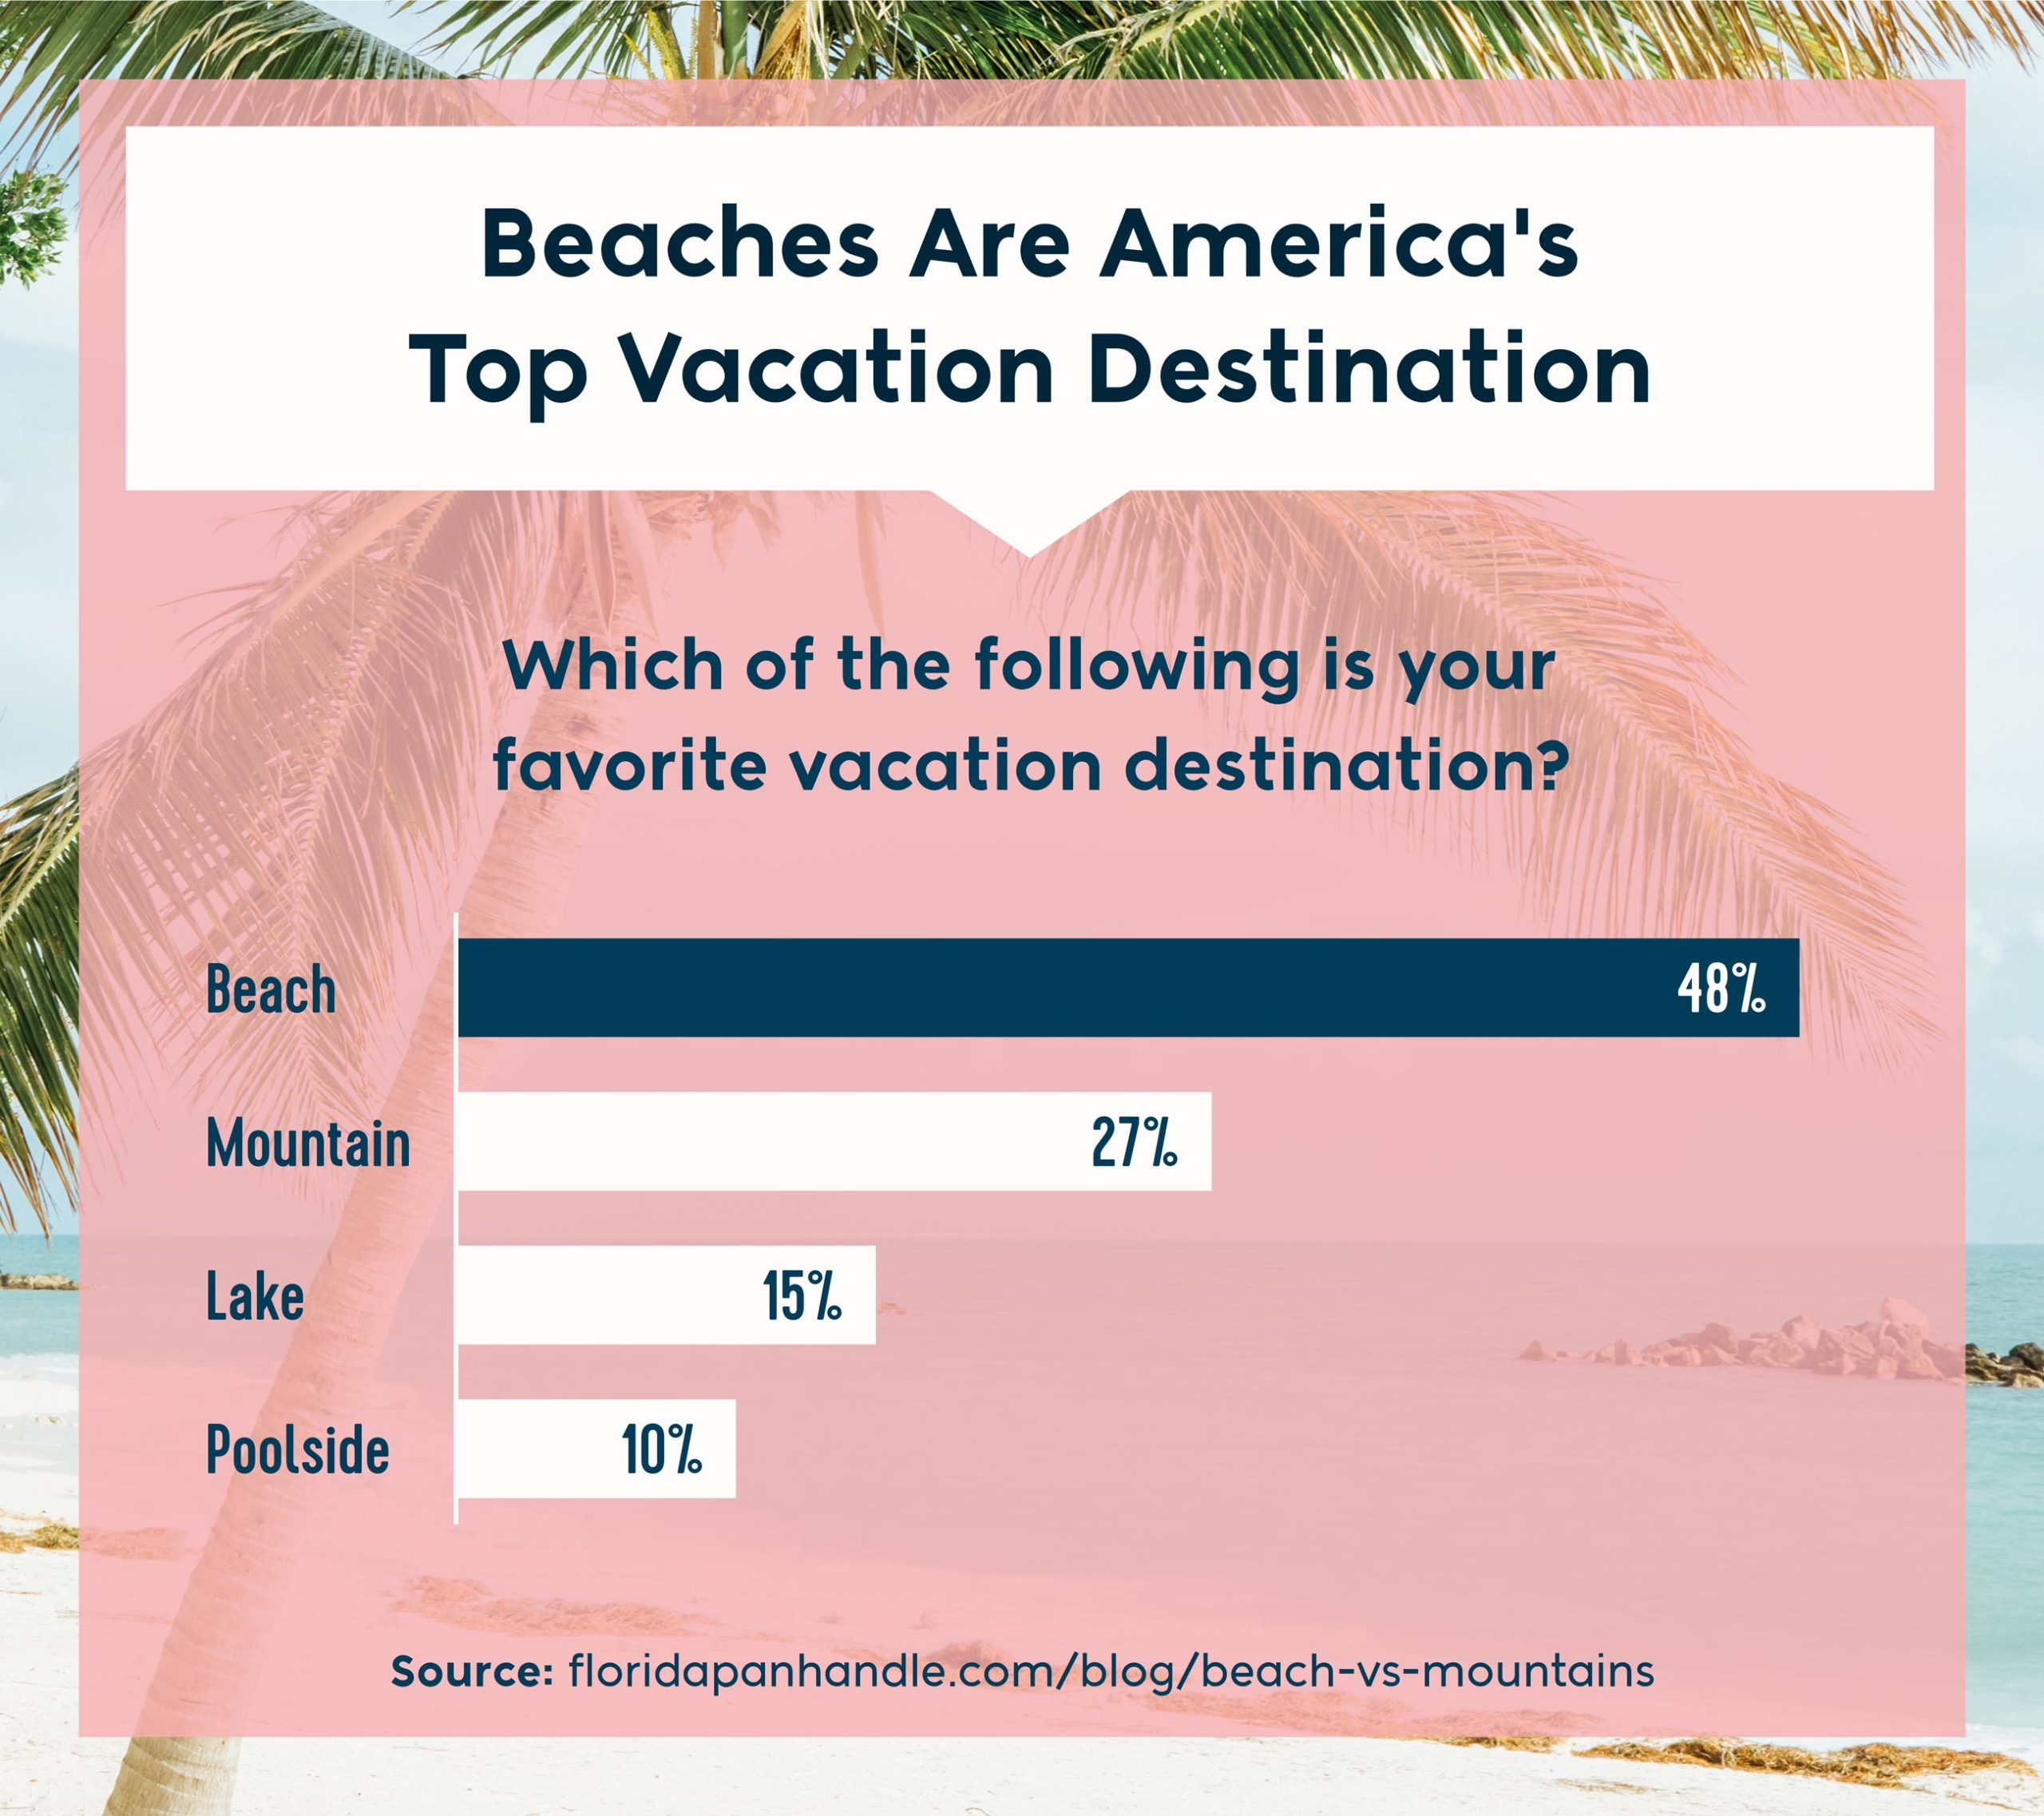 which of the following is your favorite vacation destination